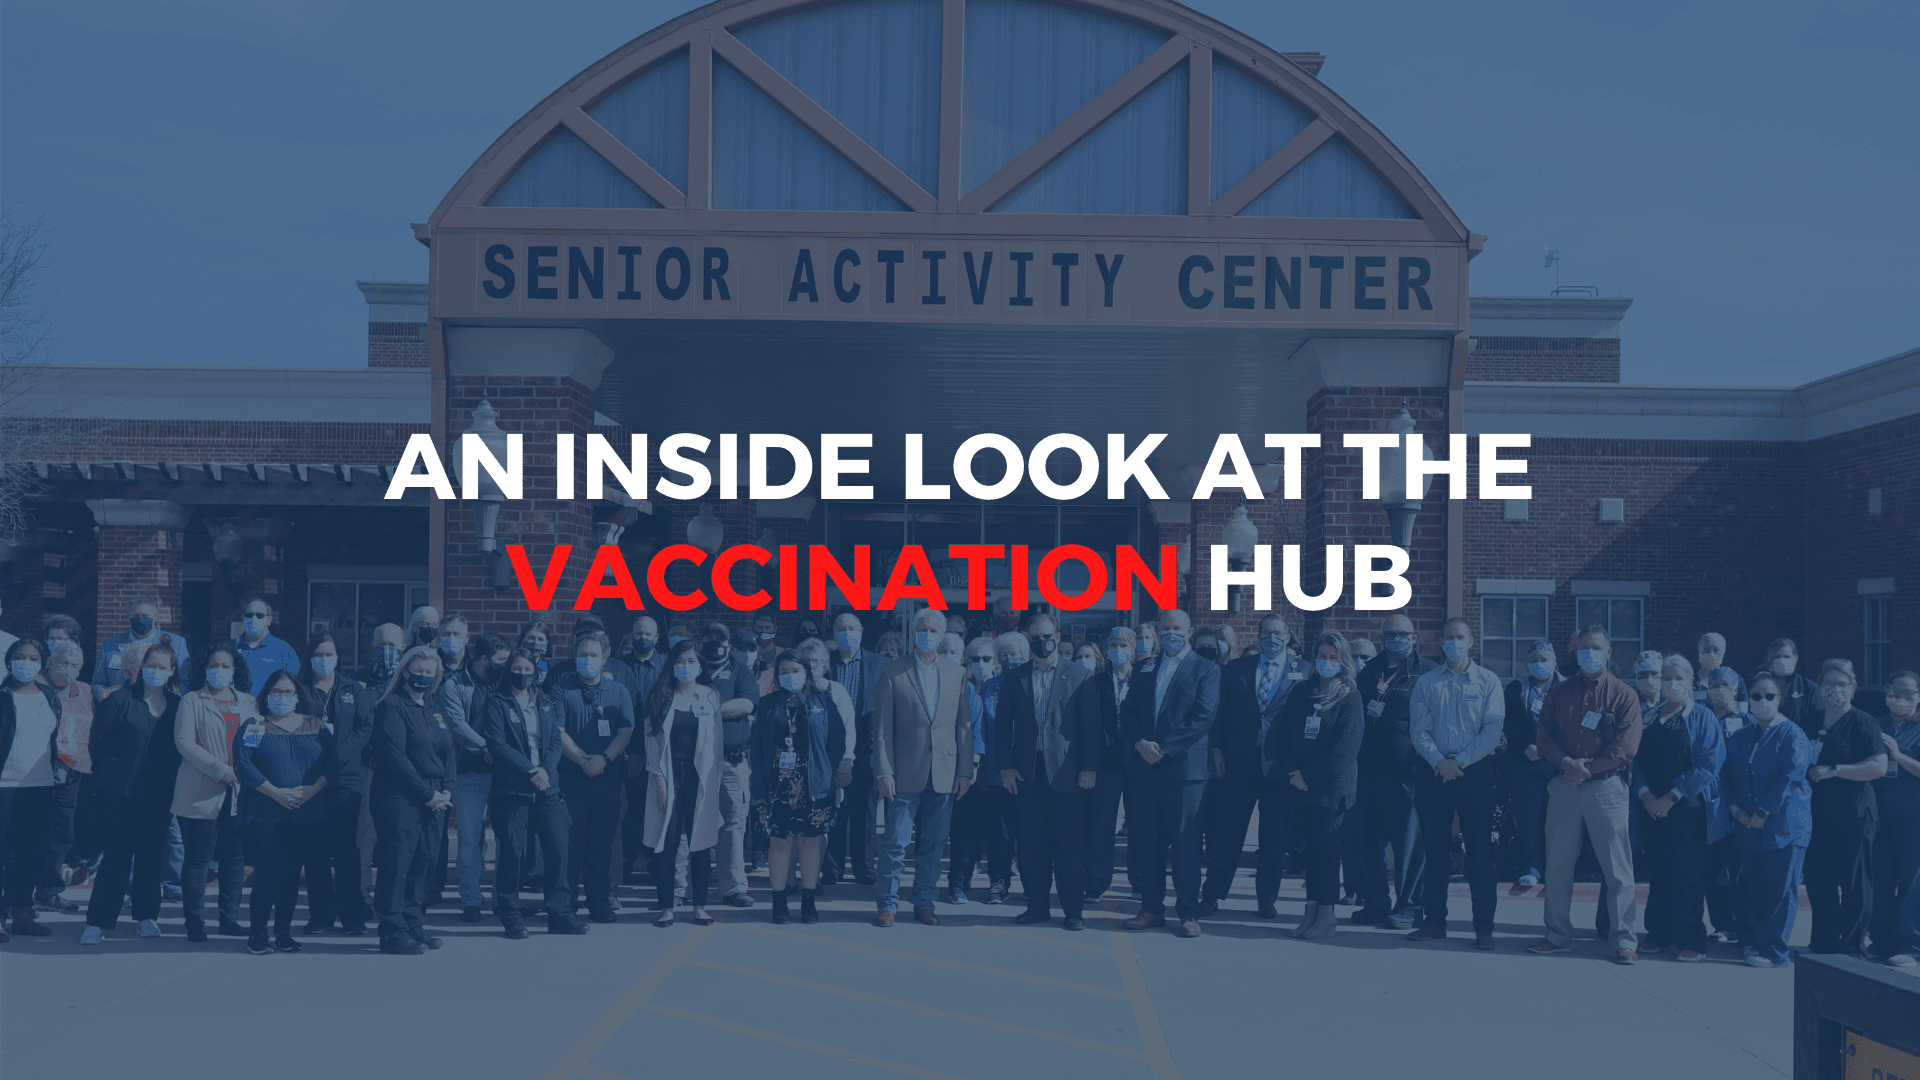 Inside the vaccination hub image